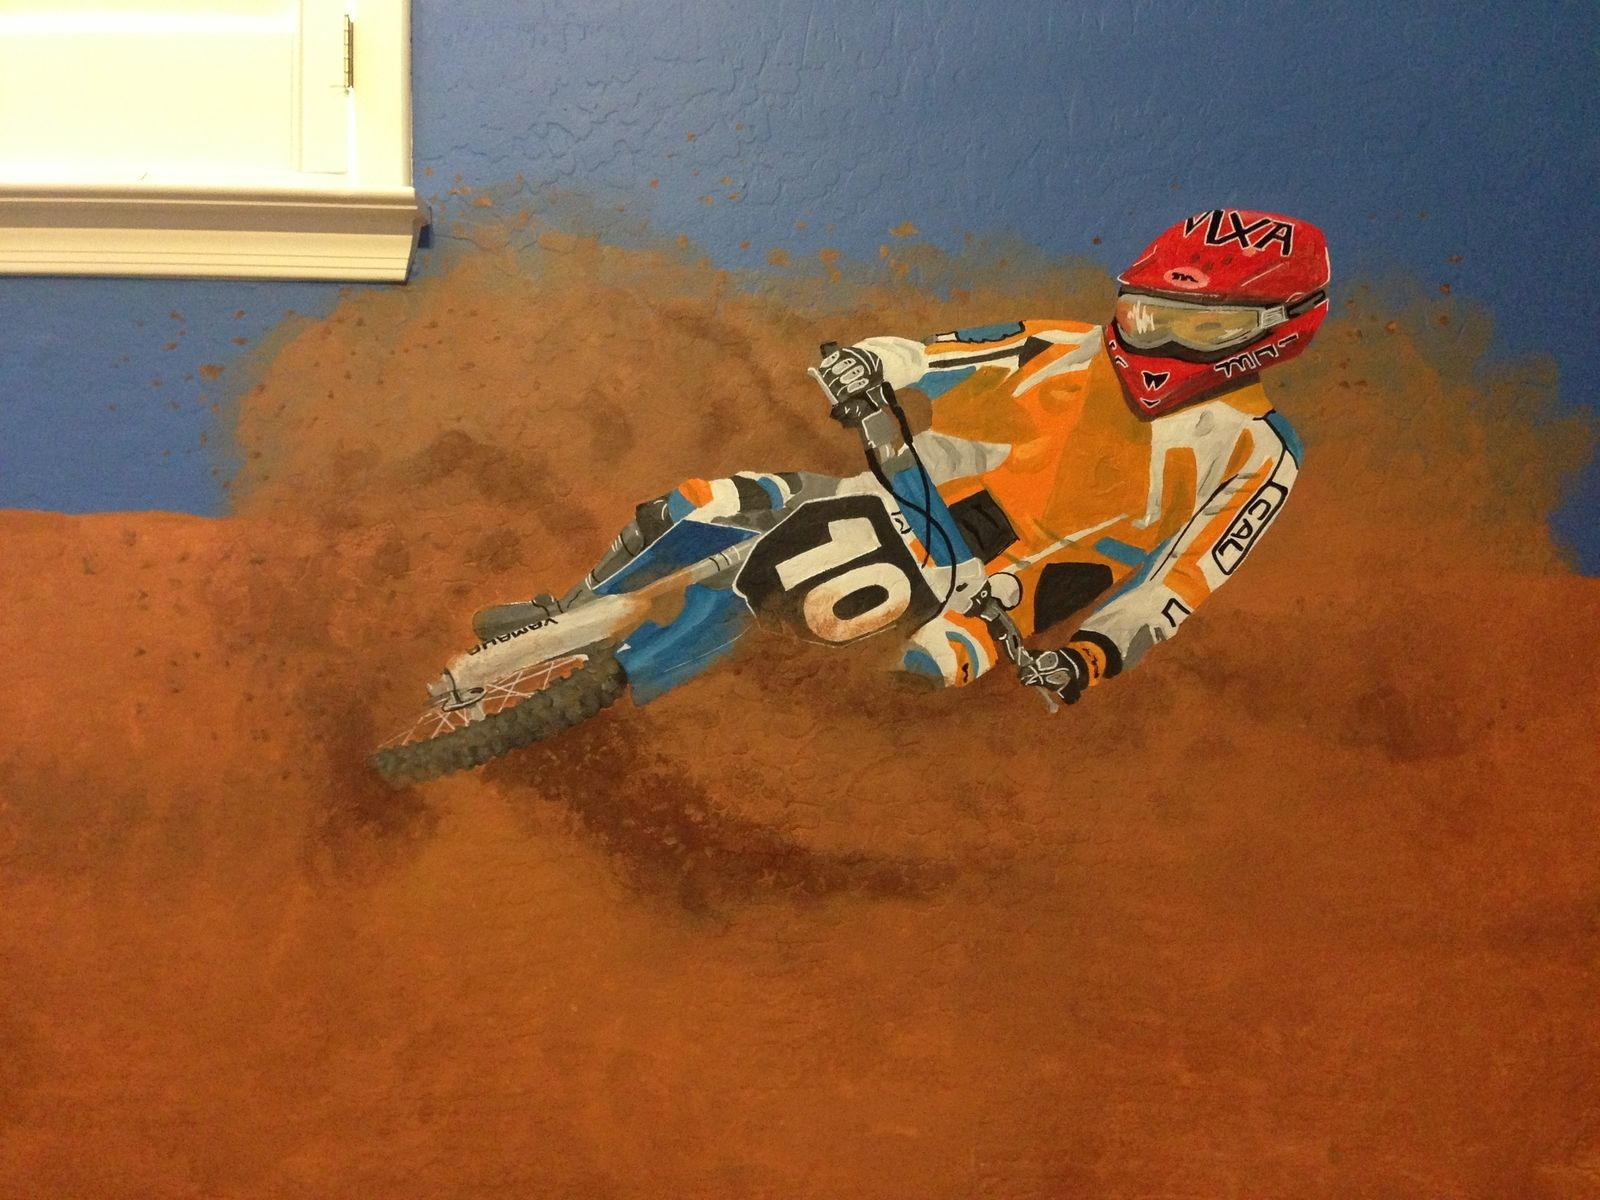 handmade dirtbike room mural by kid murals by dana custommade com custom made dirtbike room mural